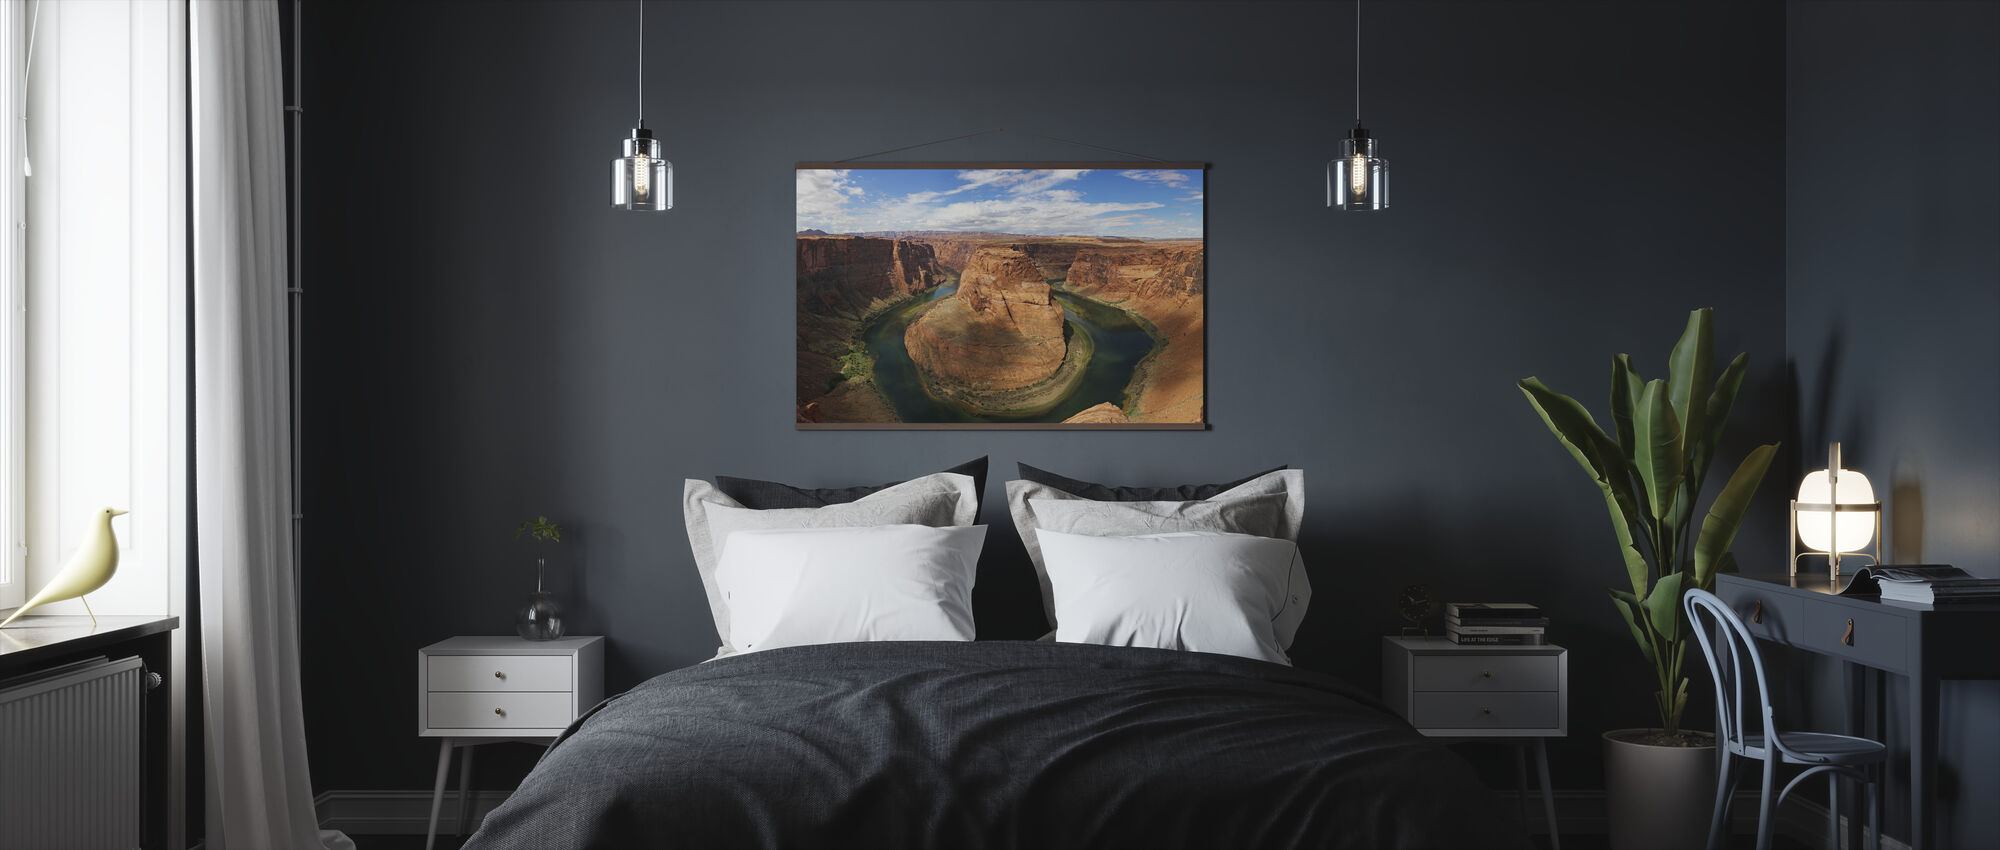 Horseshoe Bend - Poster - Bedroom